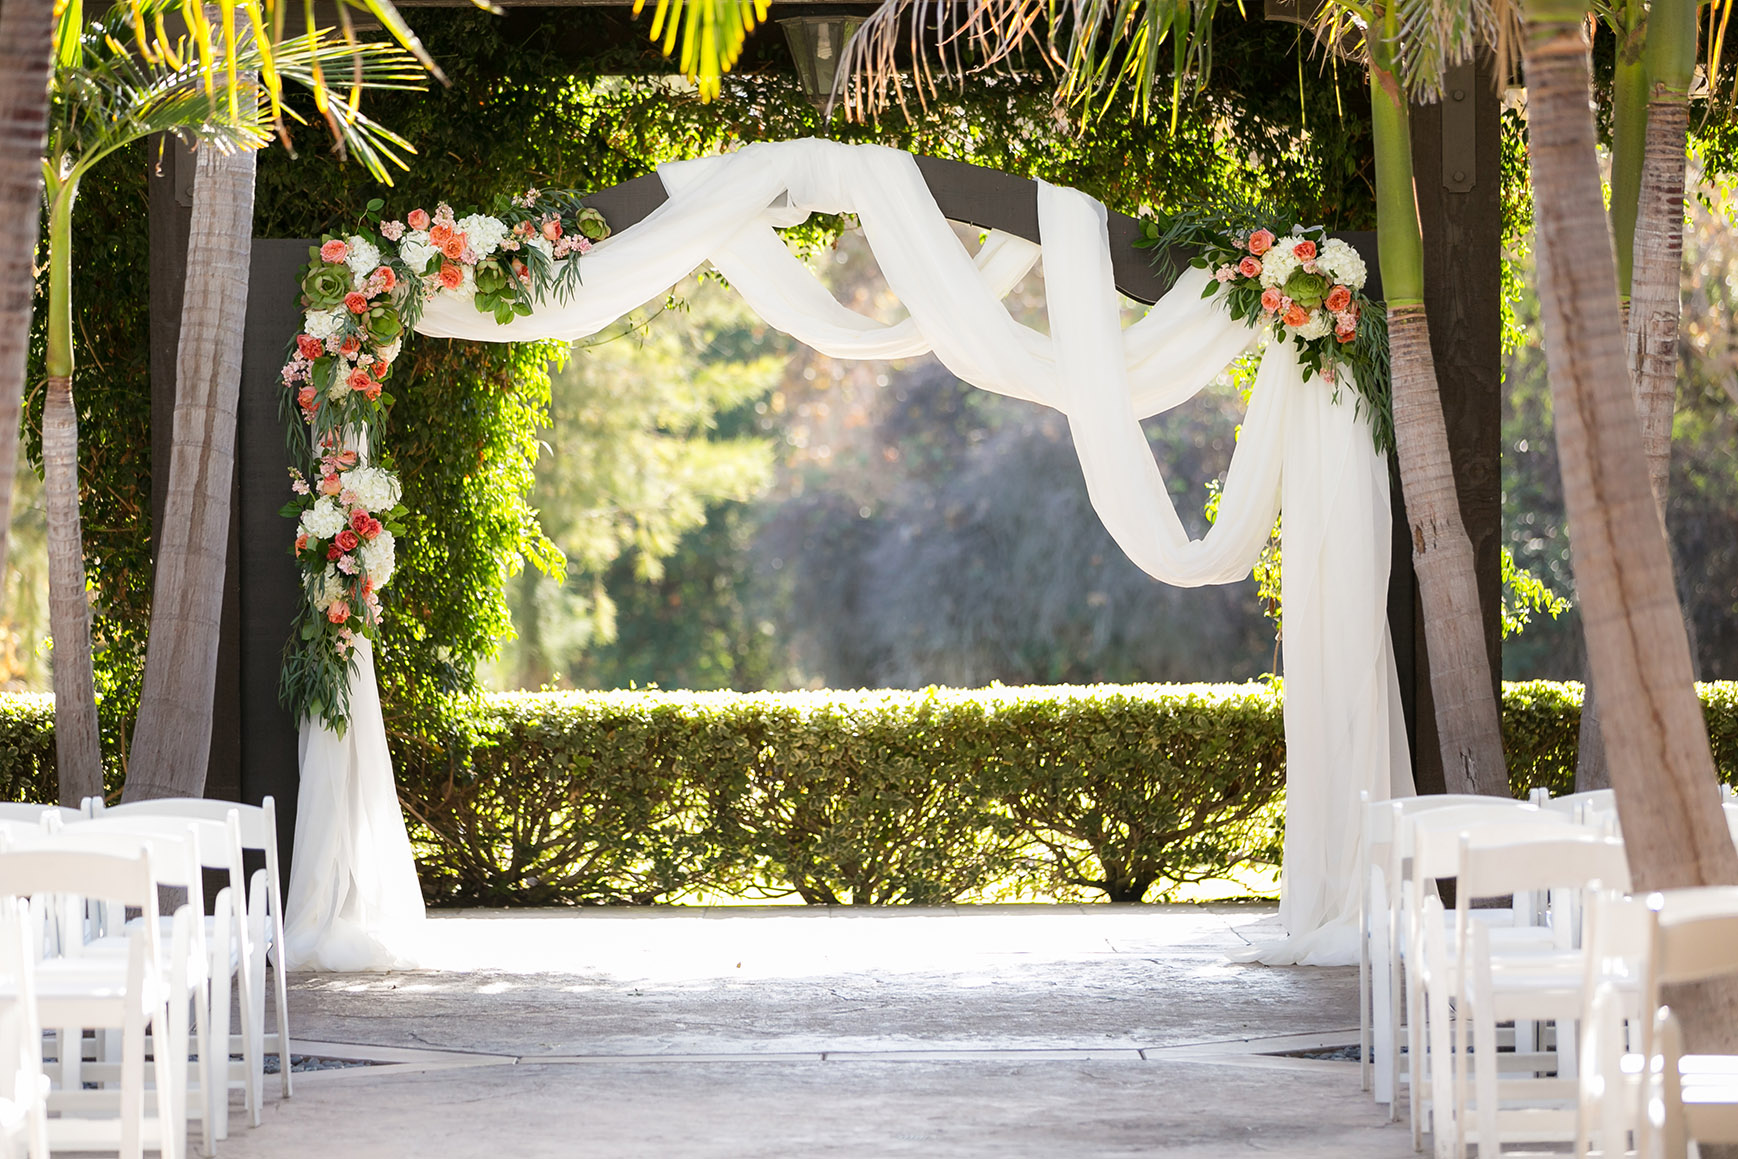 Decorative Ceremony Arbor - Fallbrook - Fallbrook, California - San Diego County - Wedgewood Weddings